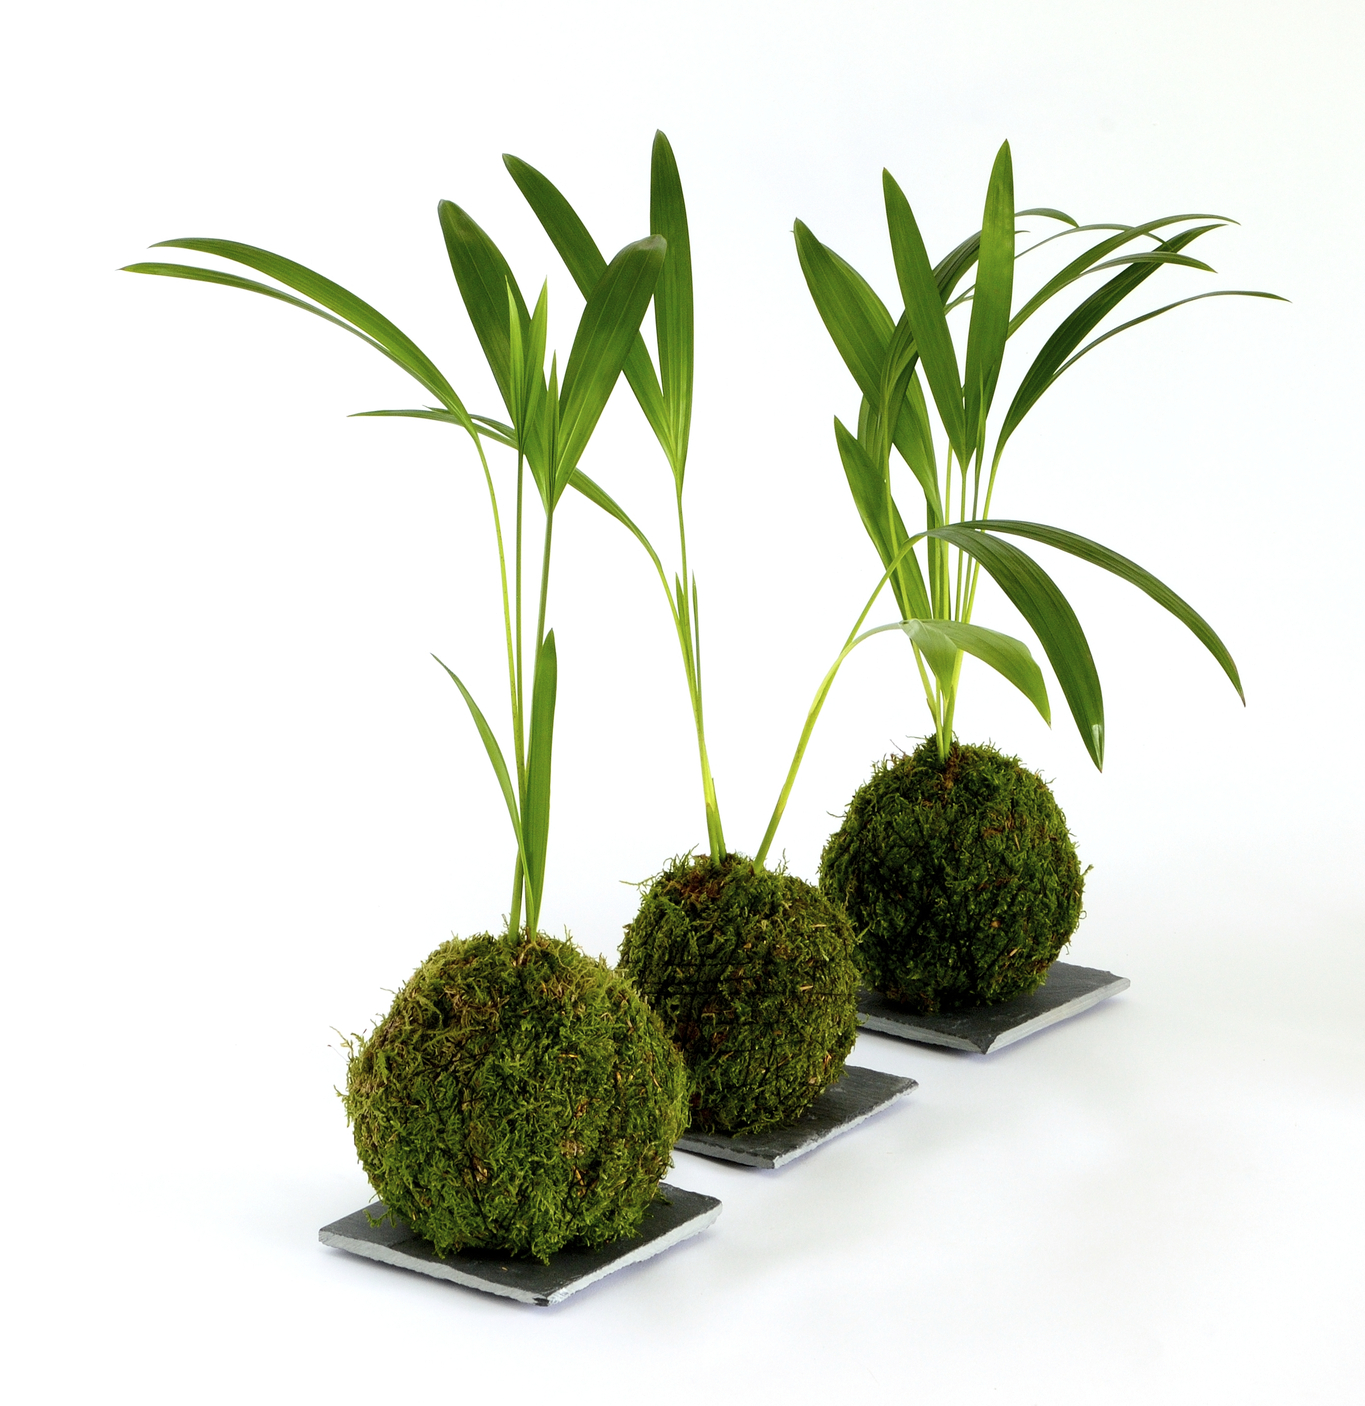 Terrarium sized plants are perfect for starter plants for Kokedama. They're easy to work with, generally don't mind the wet feet, and help a beginner out. Instead of hanging them, you can use decorative bowls or plant trays.